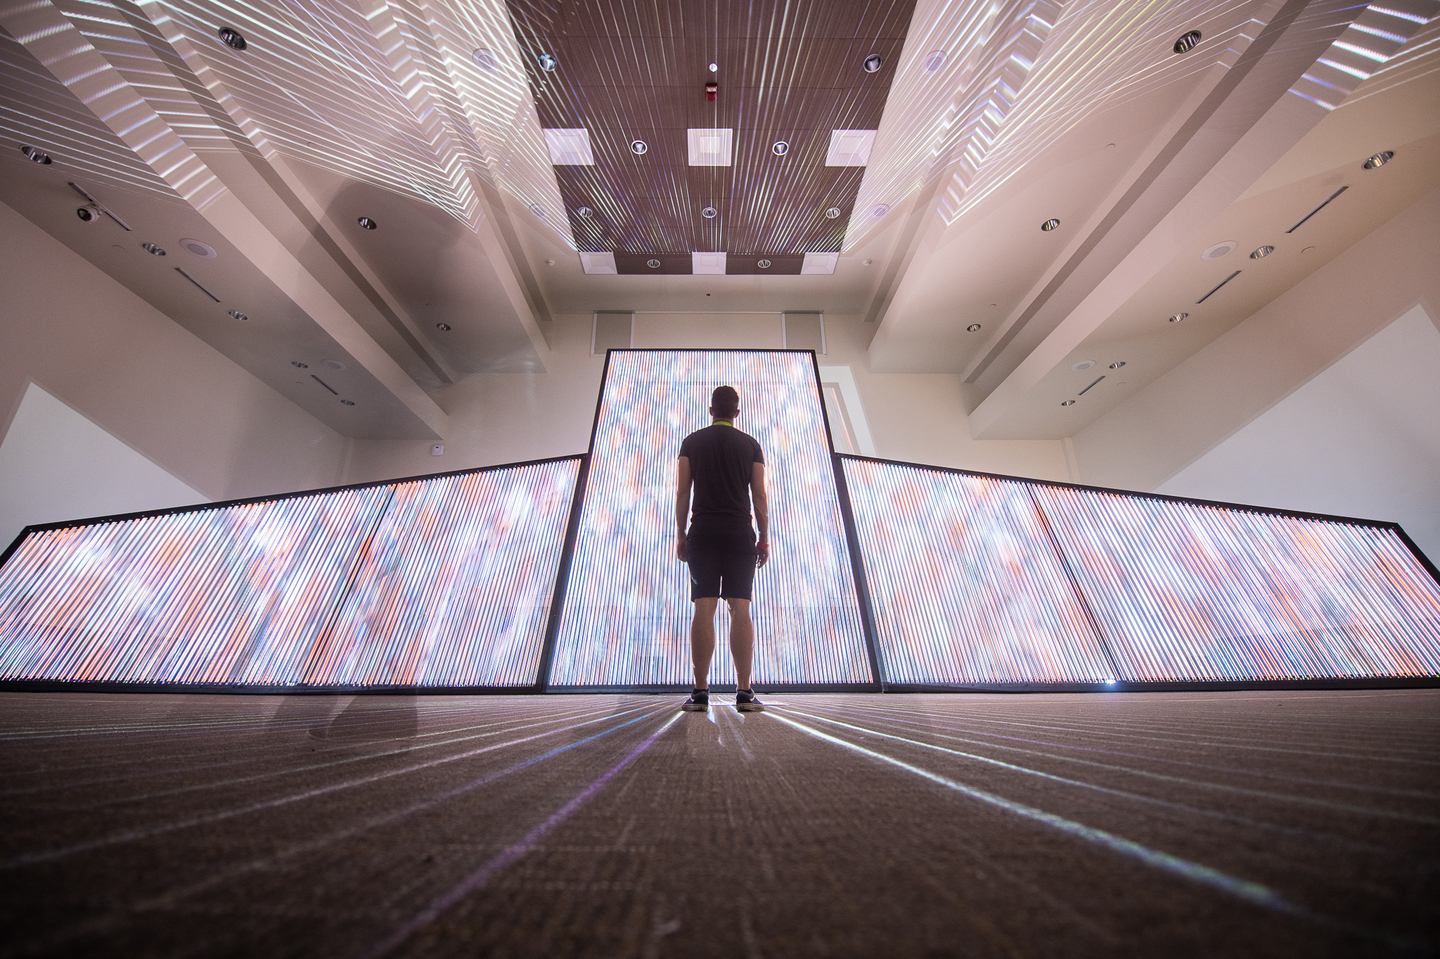 Inspired by the creation of textiles in Mexico through looms, the audiovisual installation uses a large ¨canvas¨ made out of strings of light as a medium of expression. Find it in Room 3 on the first floor of the Austin Convention Center.